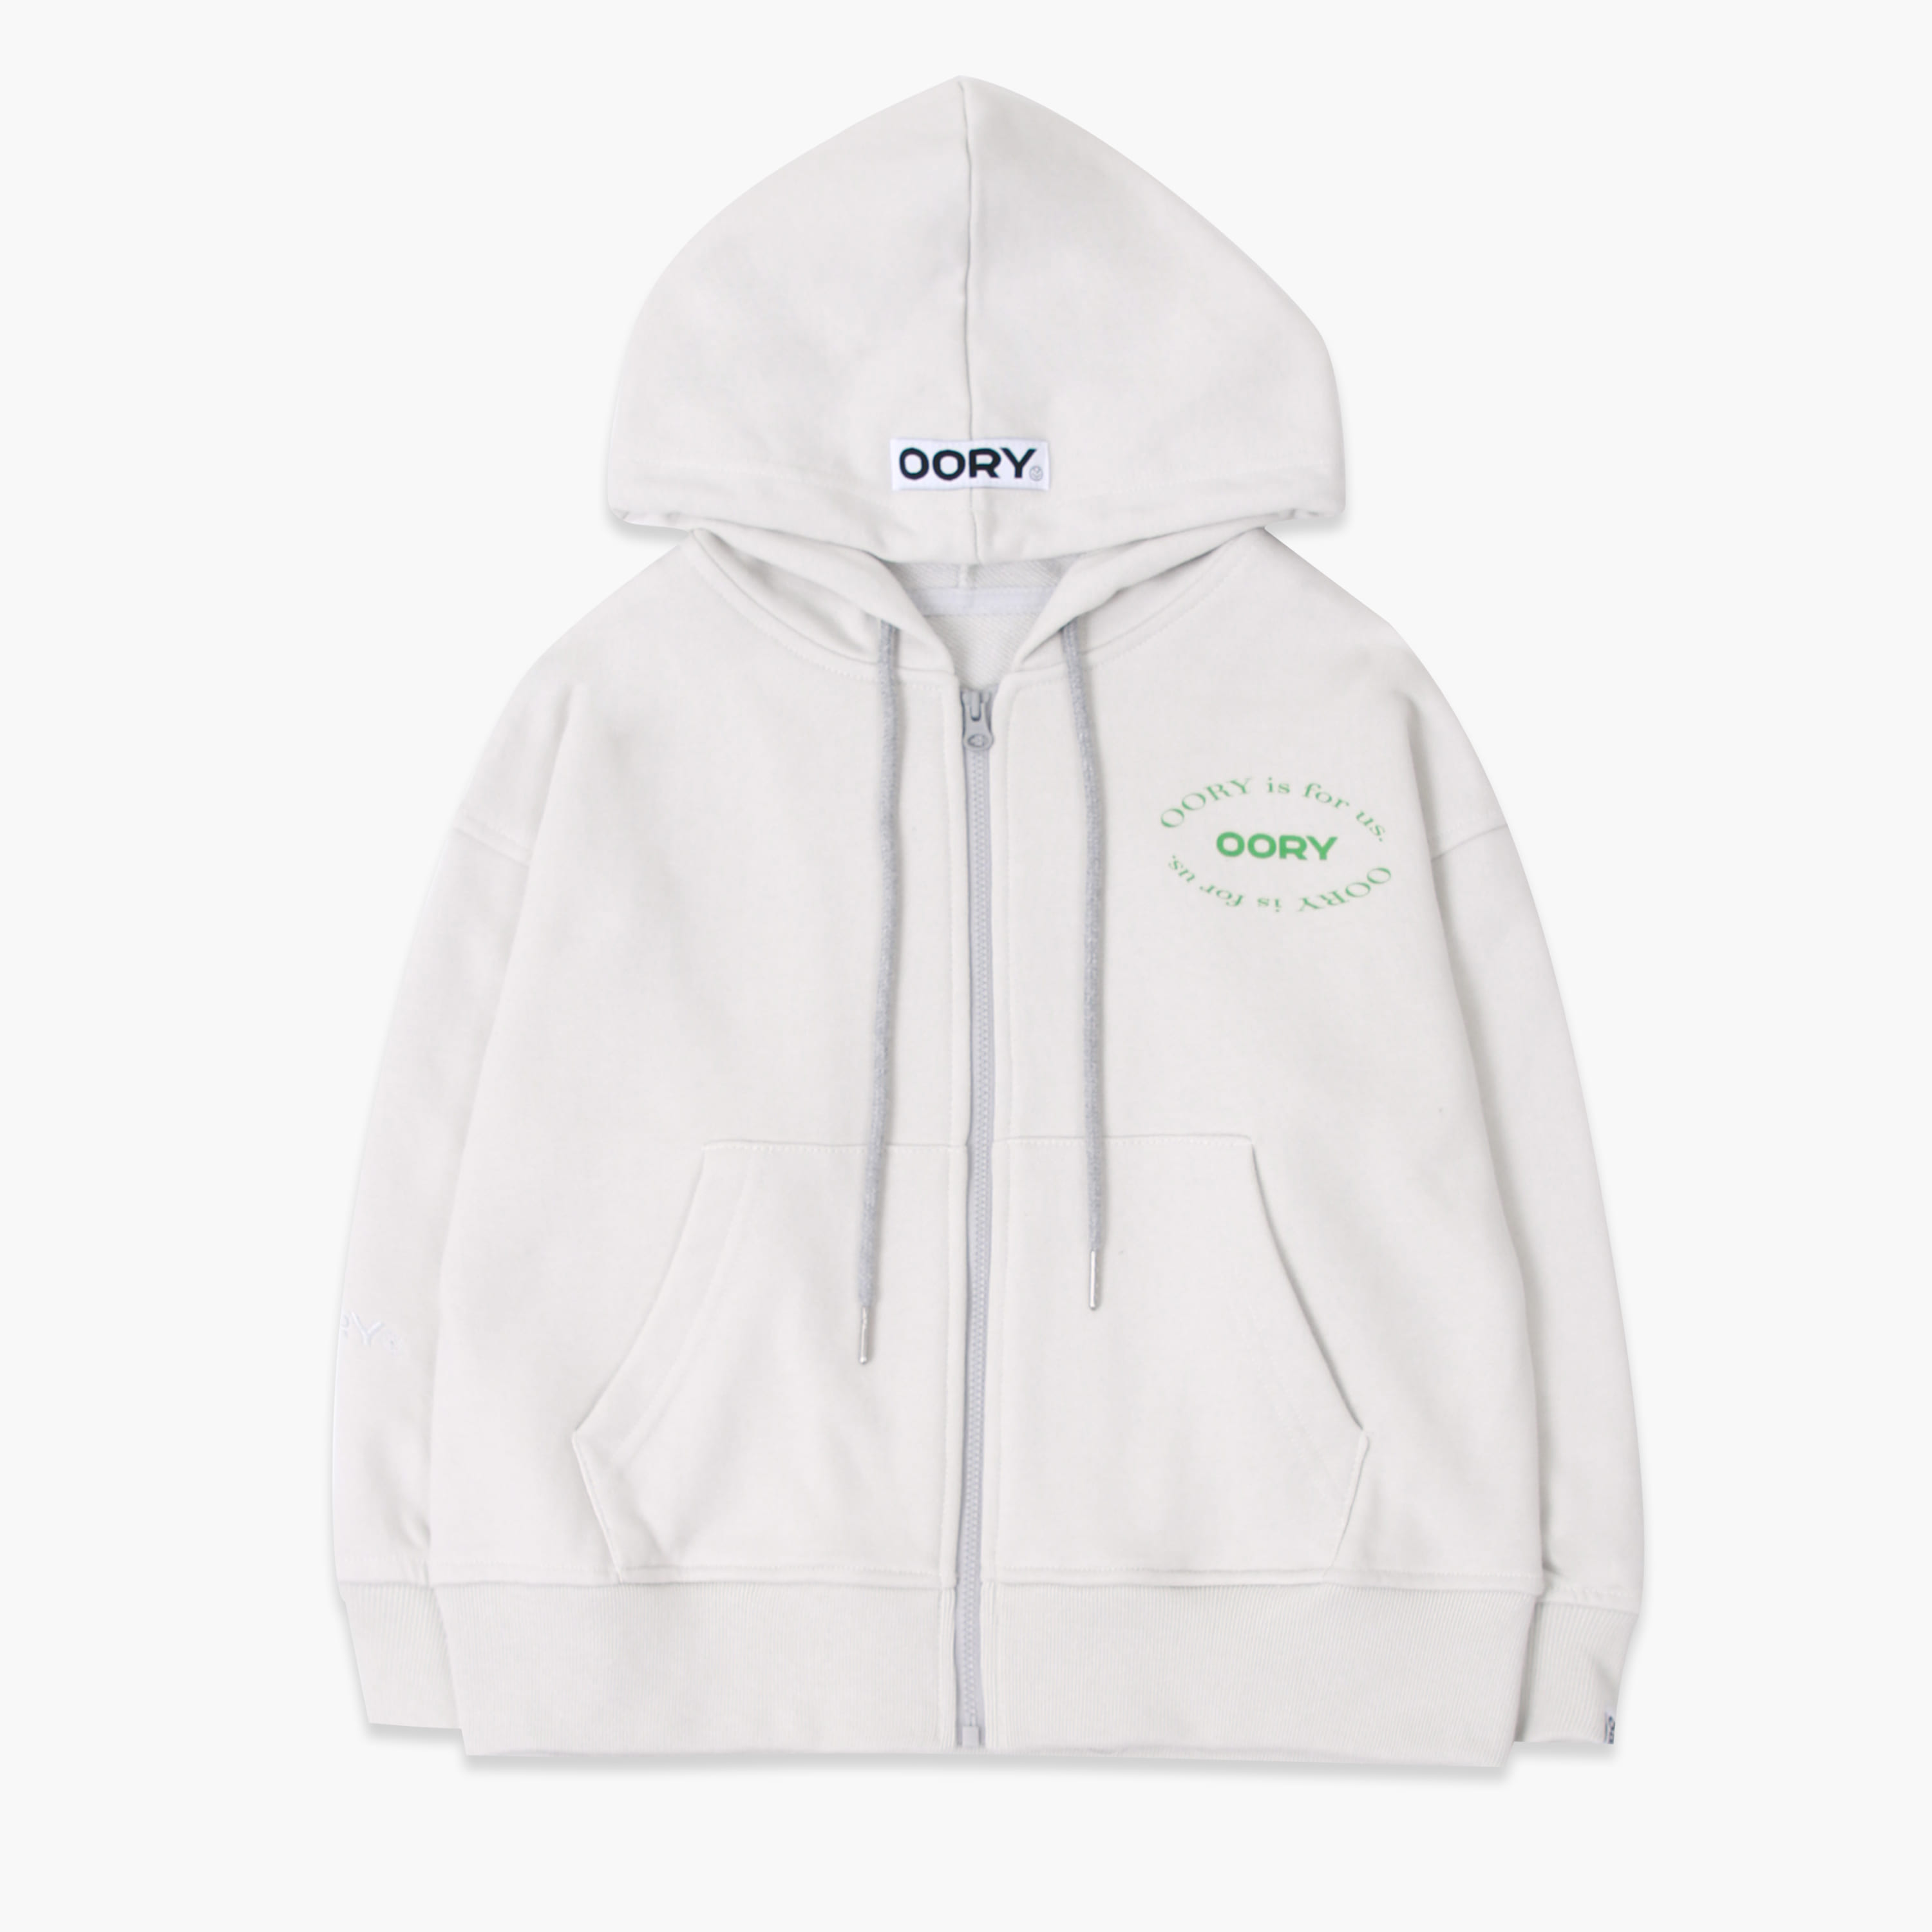 OORY 21 S/S Hood zip up - gray